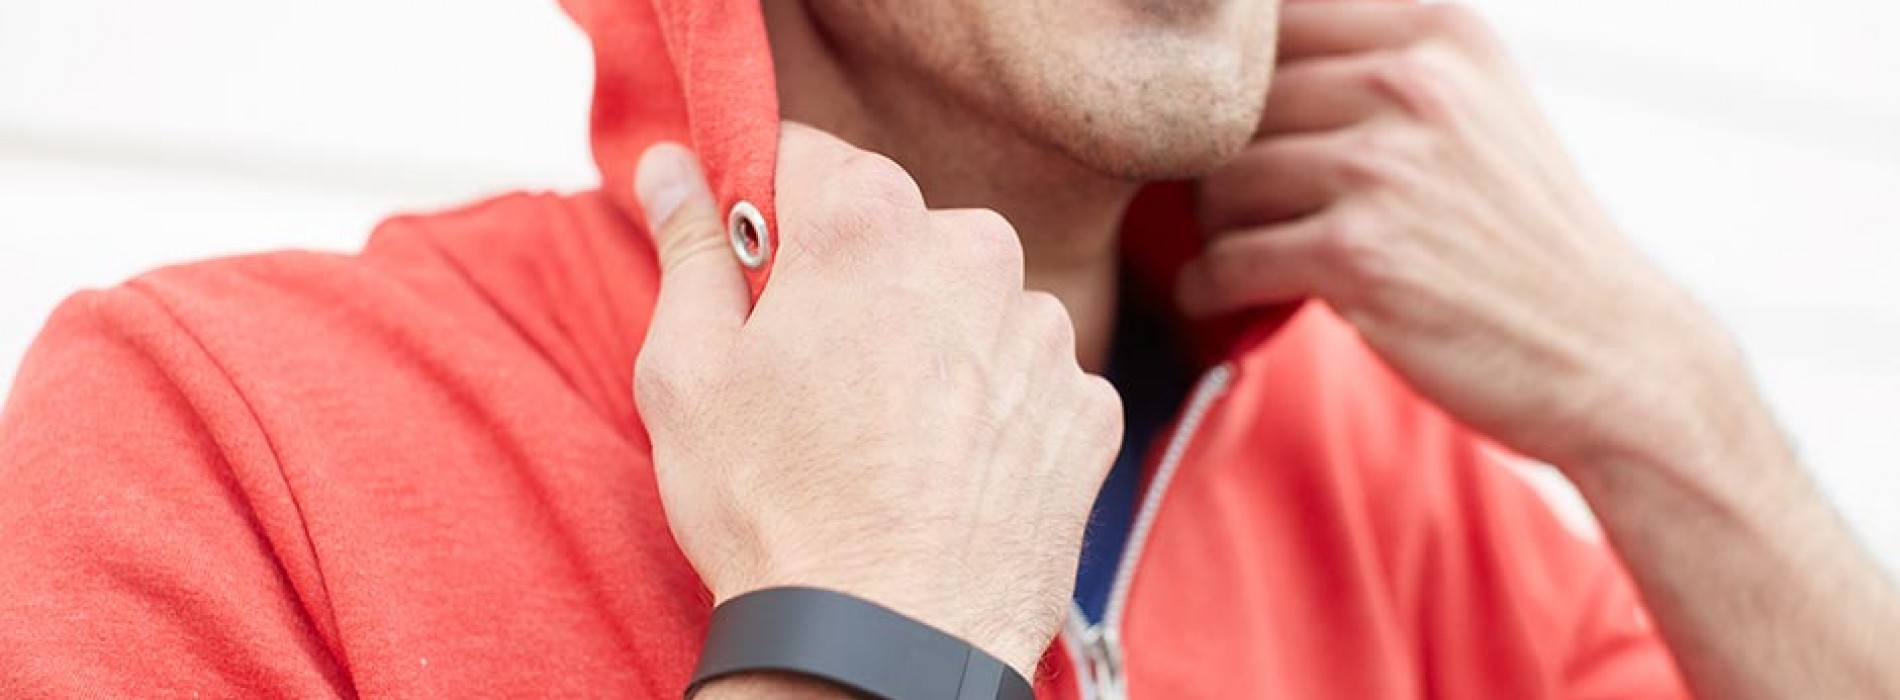 Fitbit reveals activity and sleep-tracking device, Fitbit Force